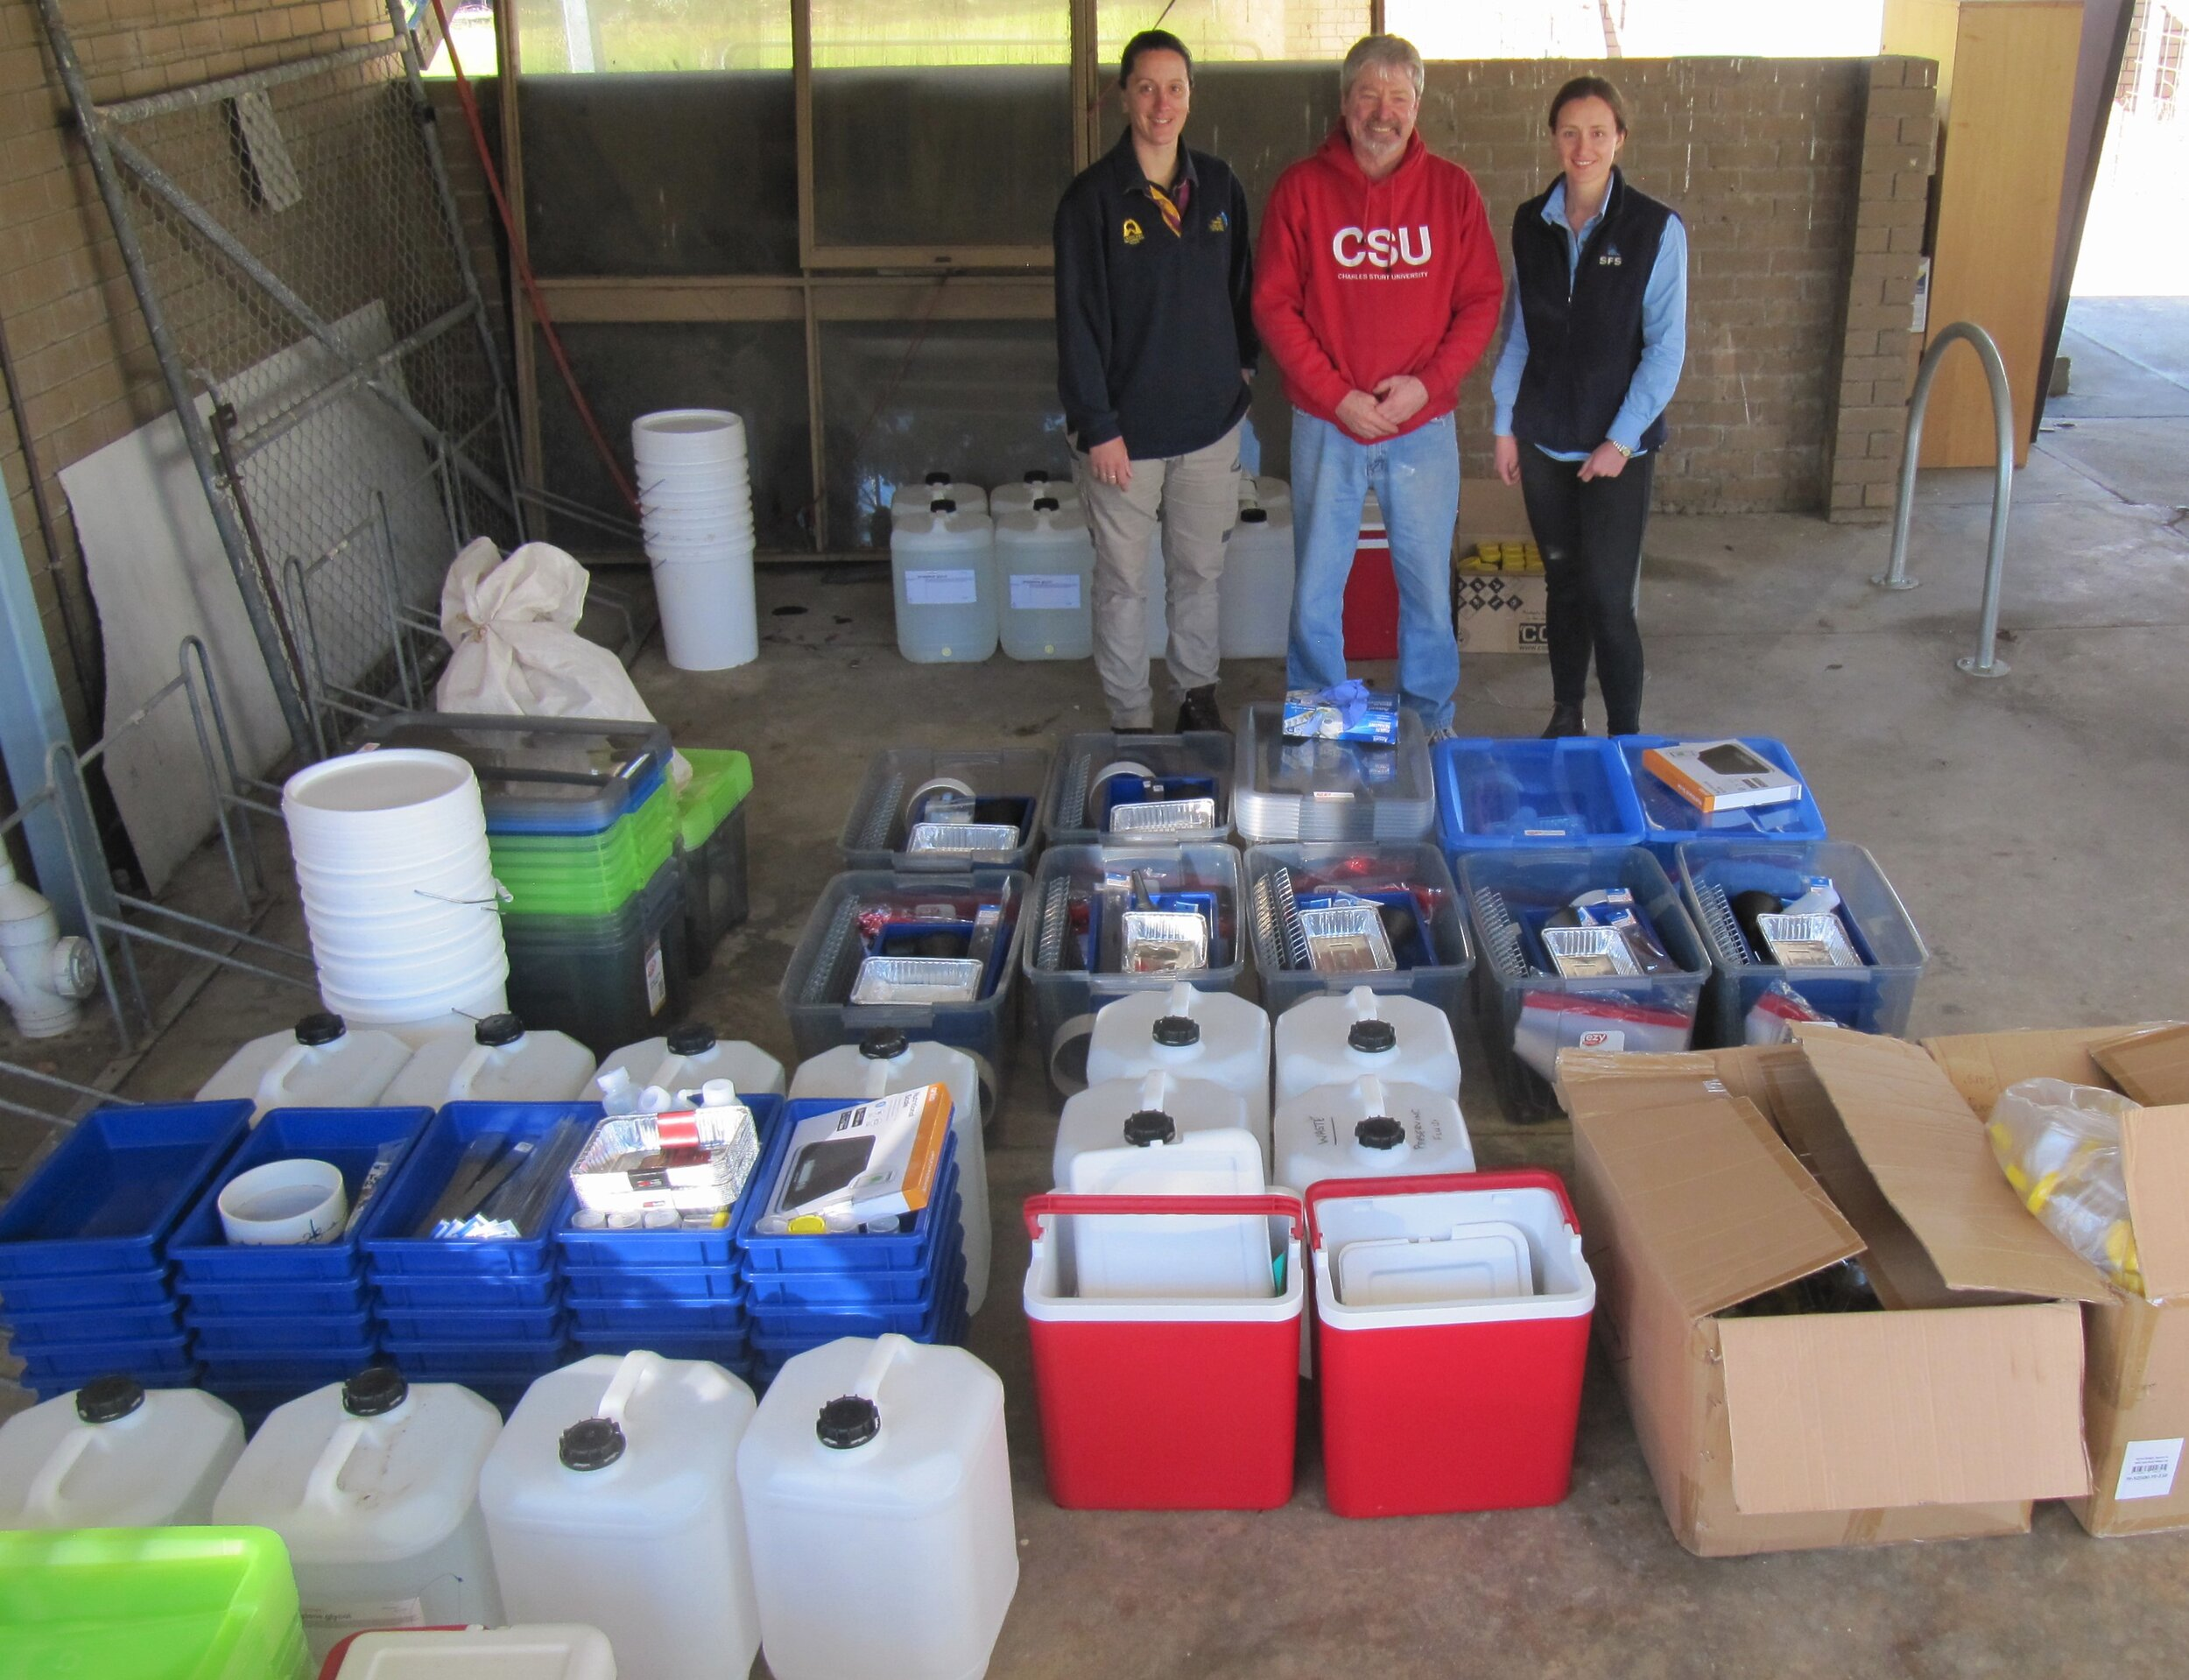 Natalie Jenkins, Graeme Heath and Ashley Amourgis and components of the field monitoring kits